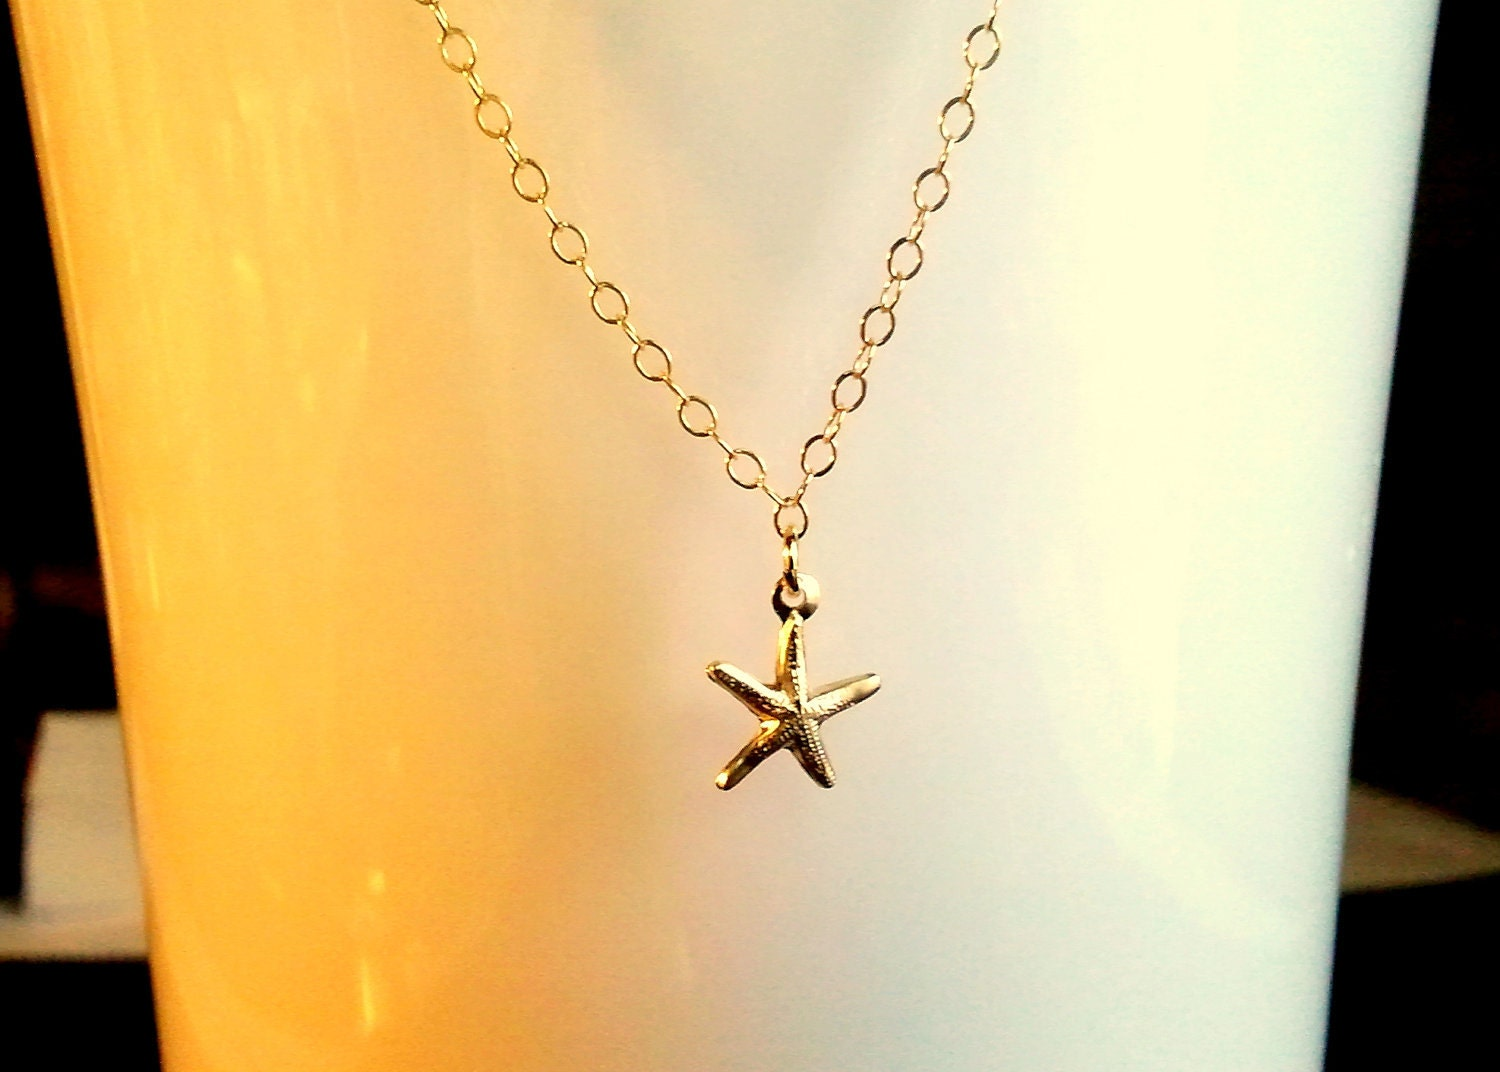 14k Gold Filled Tiny Starfish Charm Necklace - simple, modern, everyday jewelry